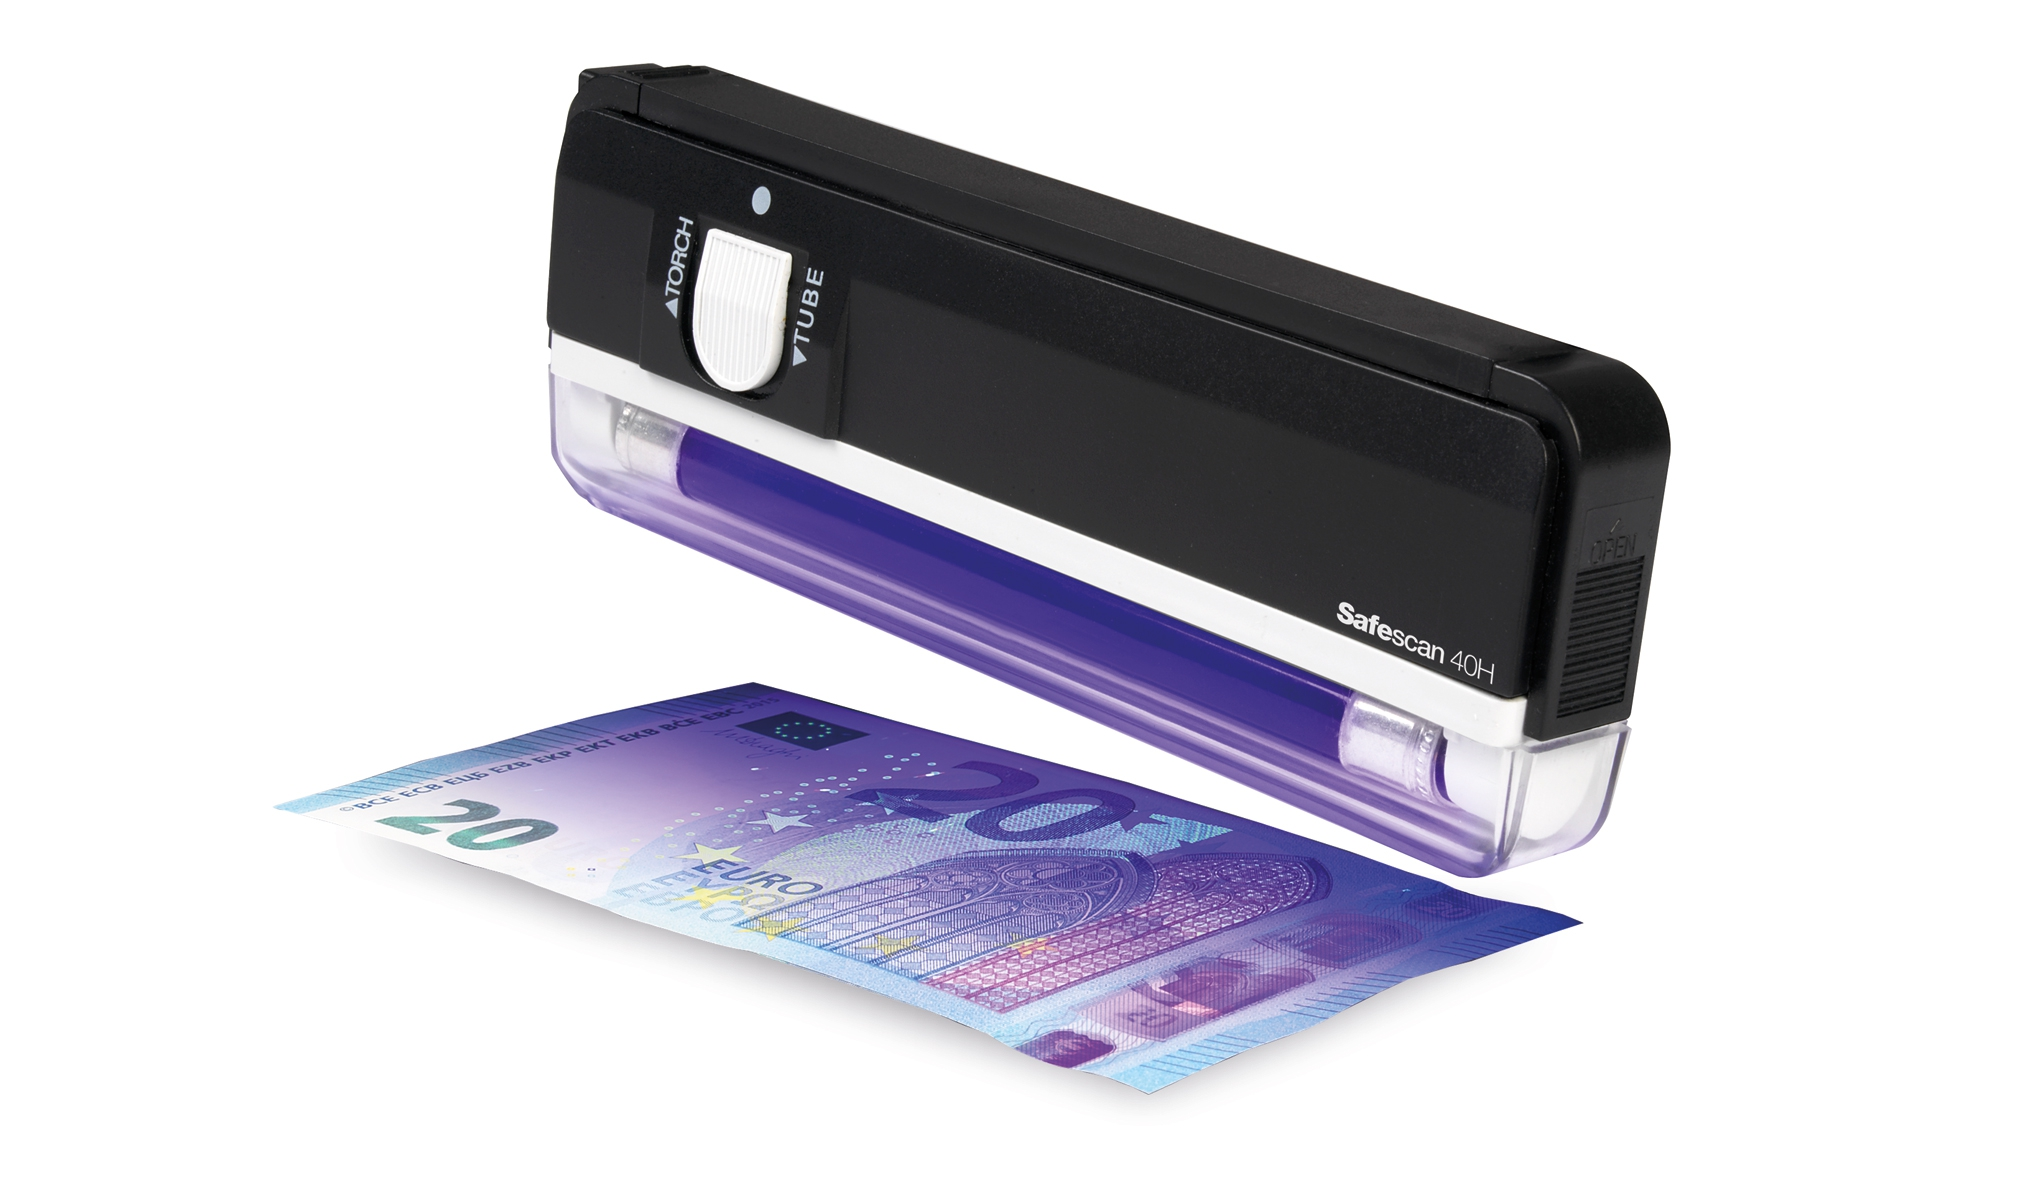 safescan-40h-portable-counterfeit-detector